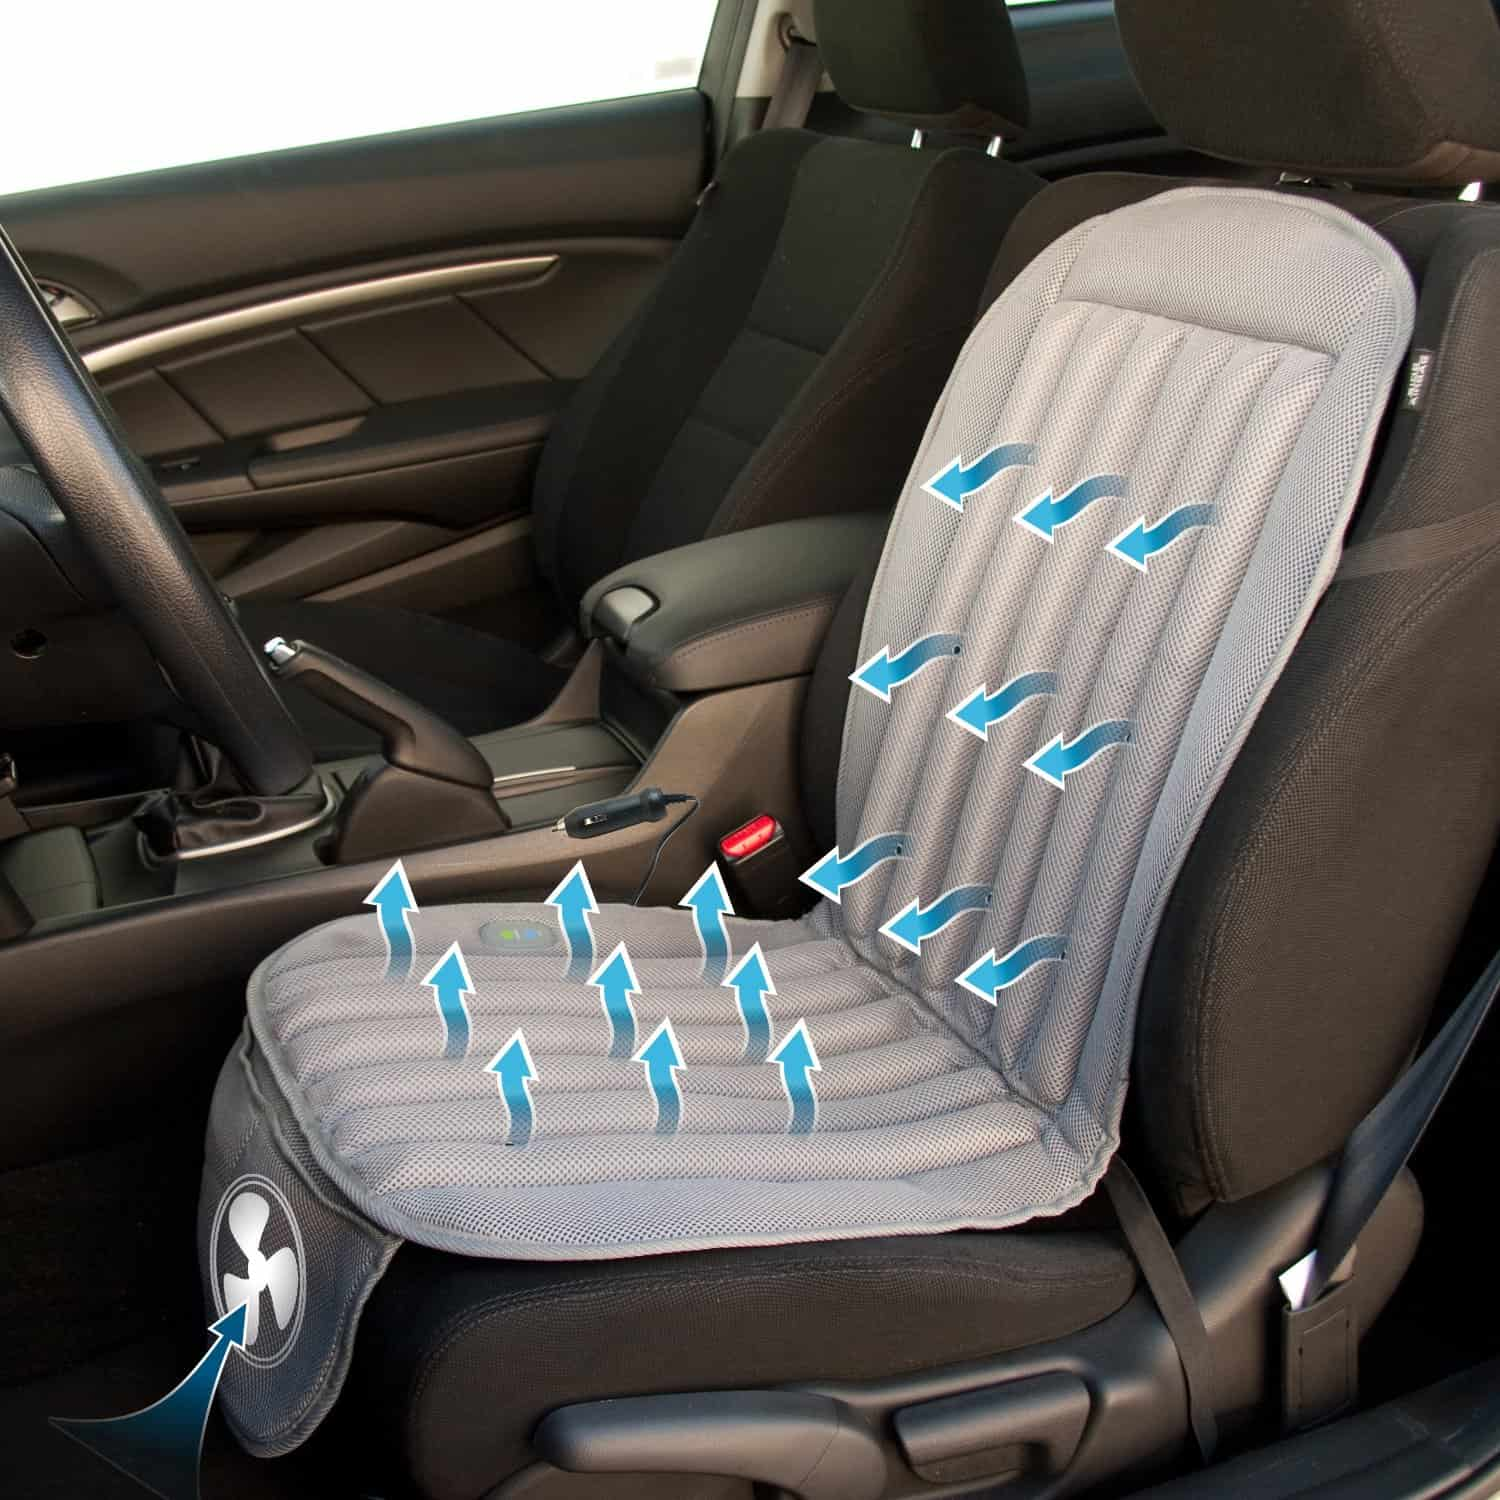 Keep Cool With The Wagan Cooling Car Seat Cushion